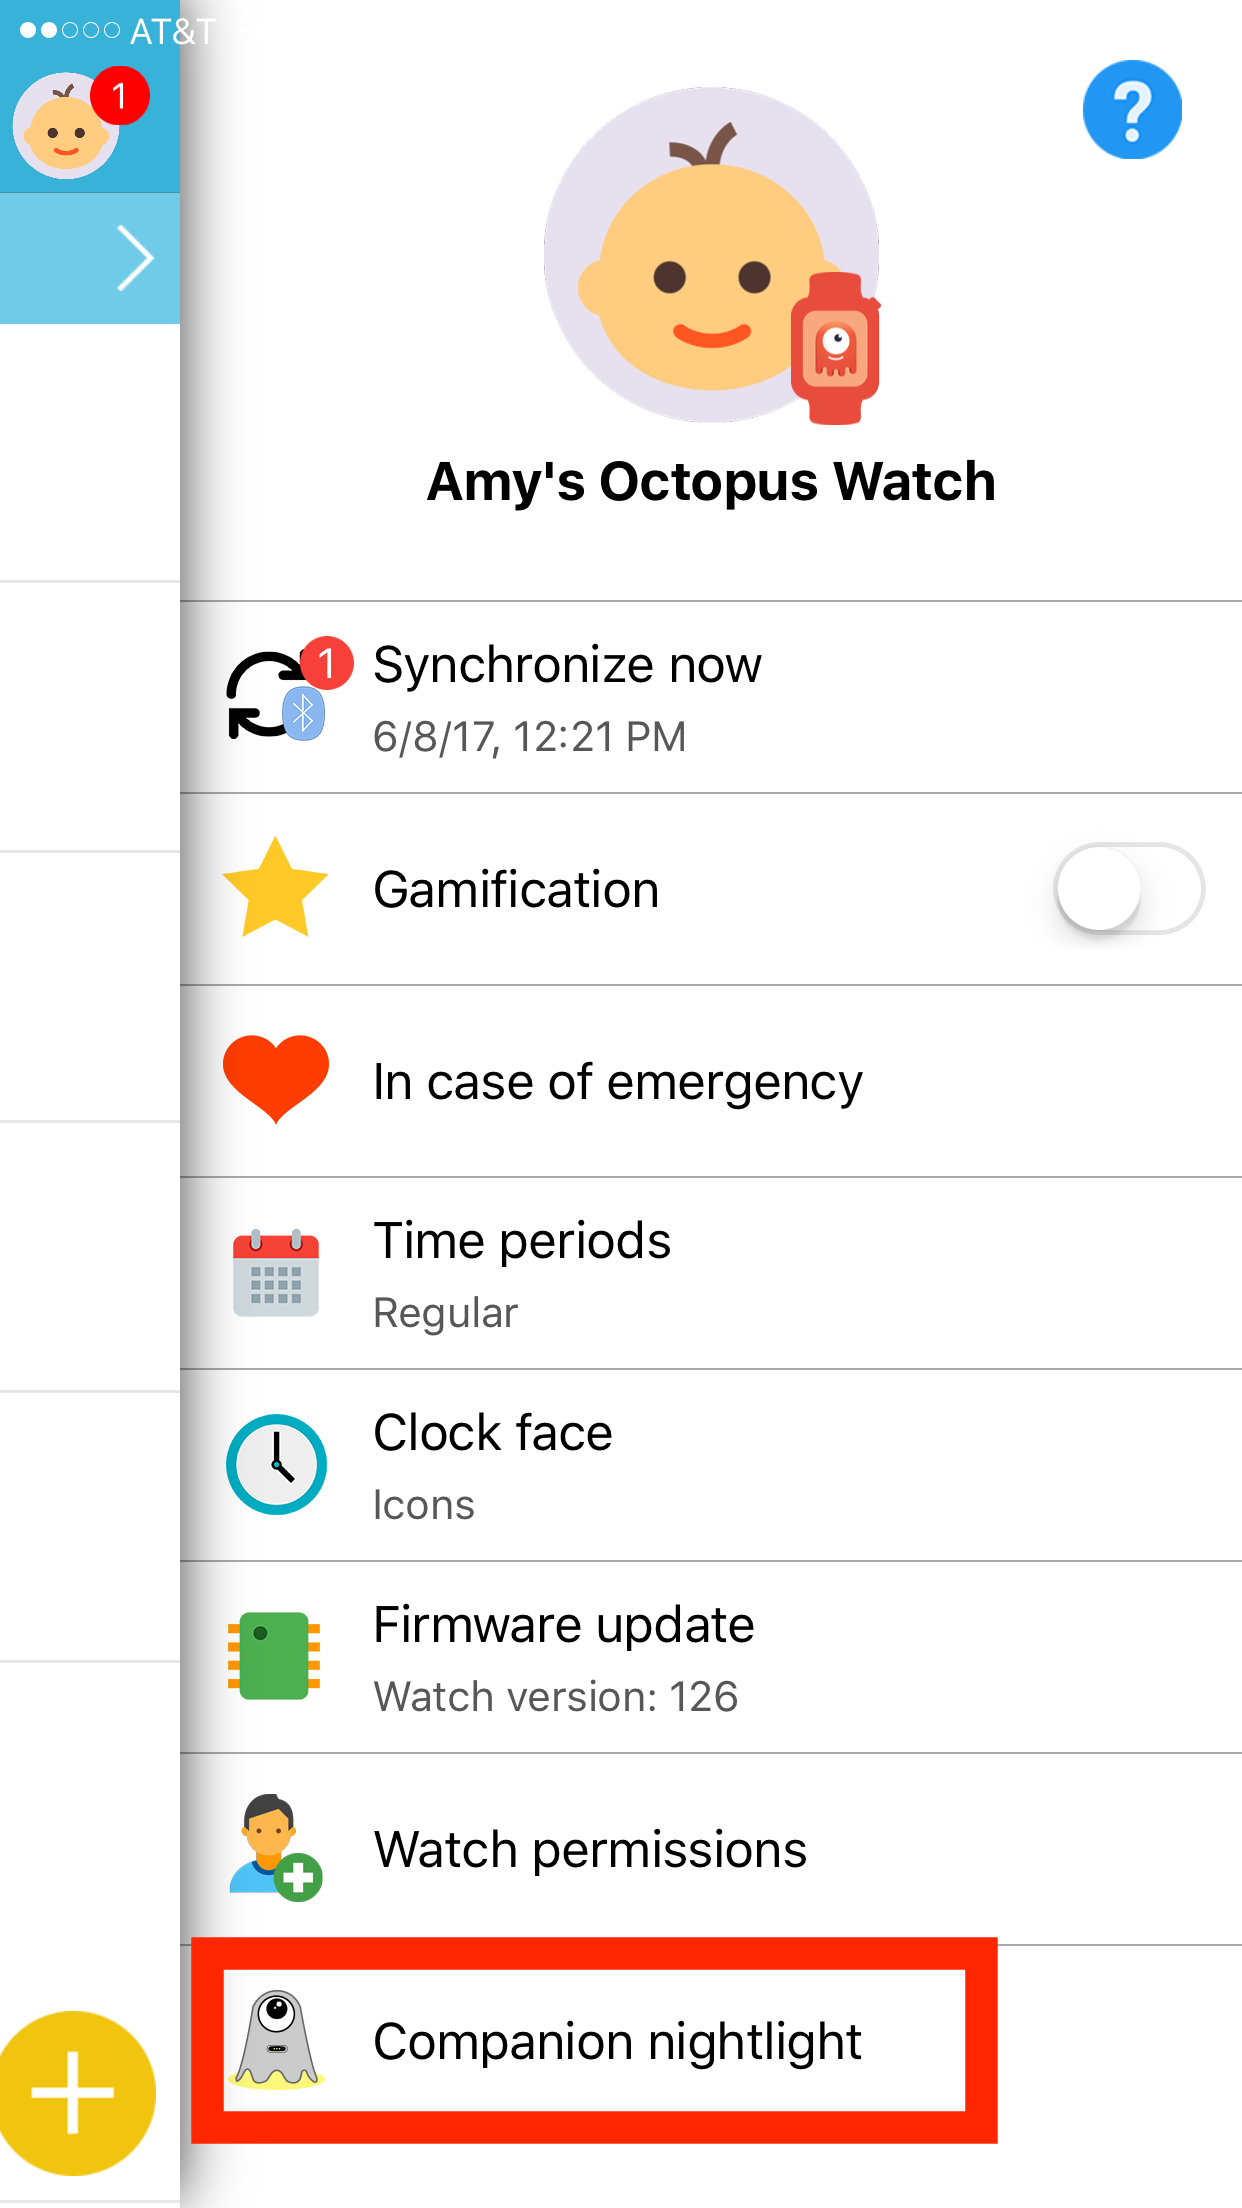 Octopus Watch app: select programmable companion nightlight